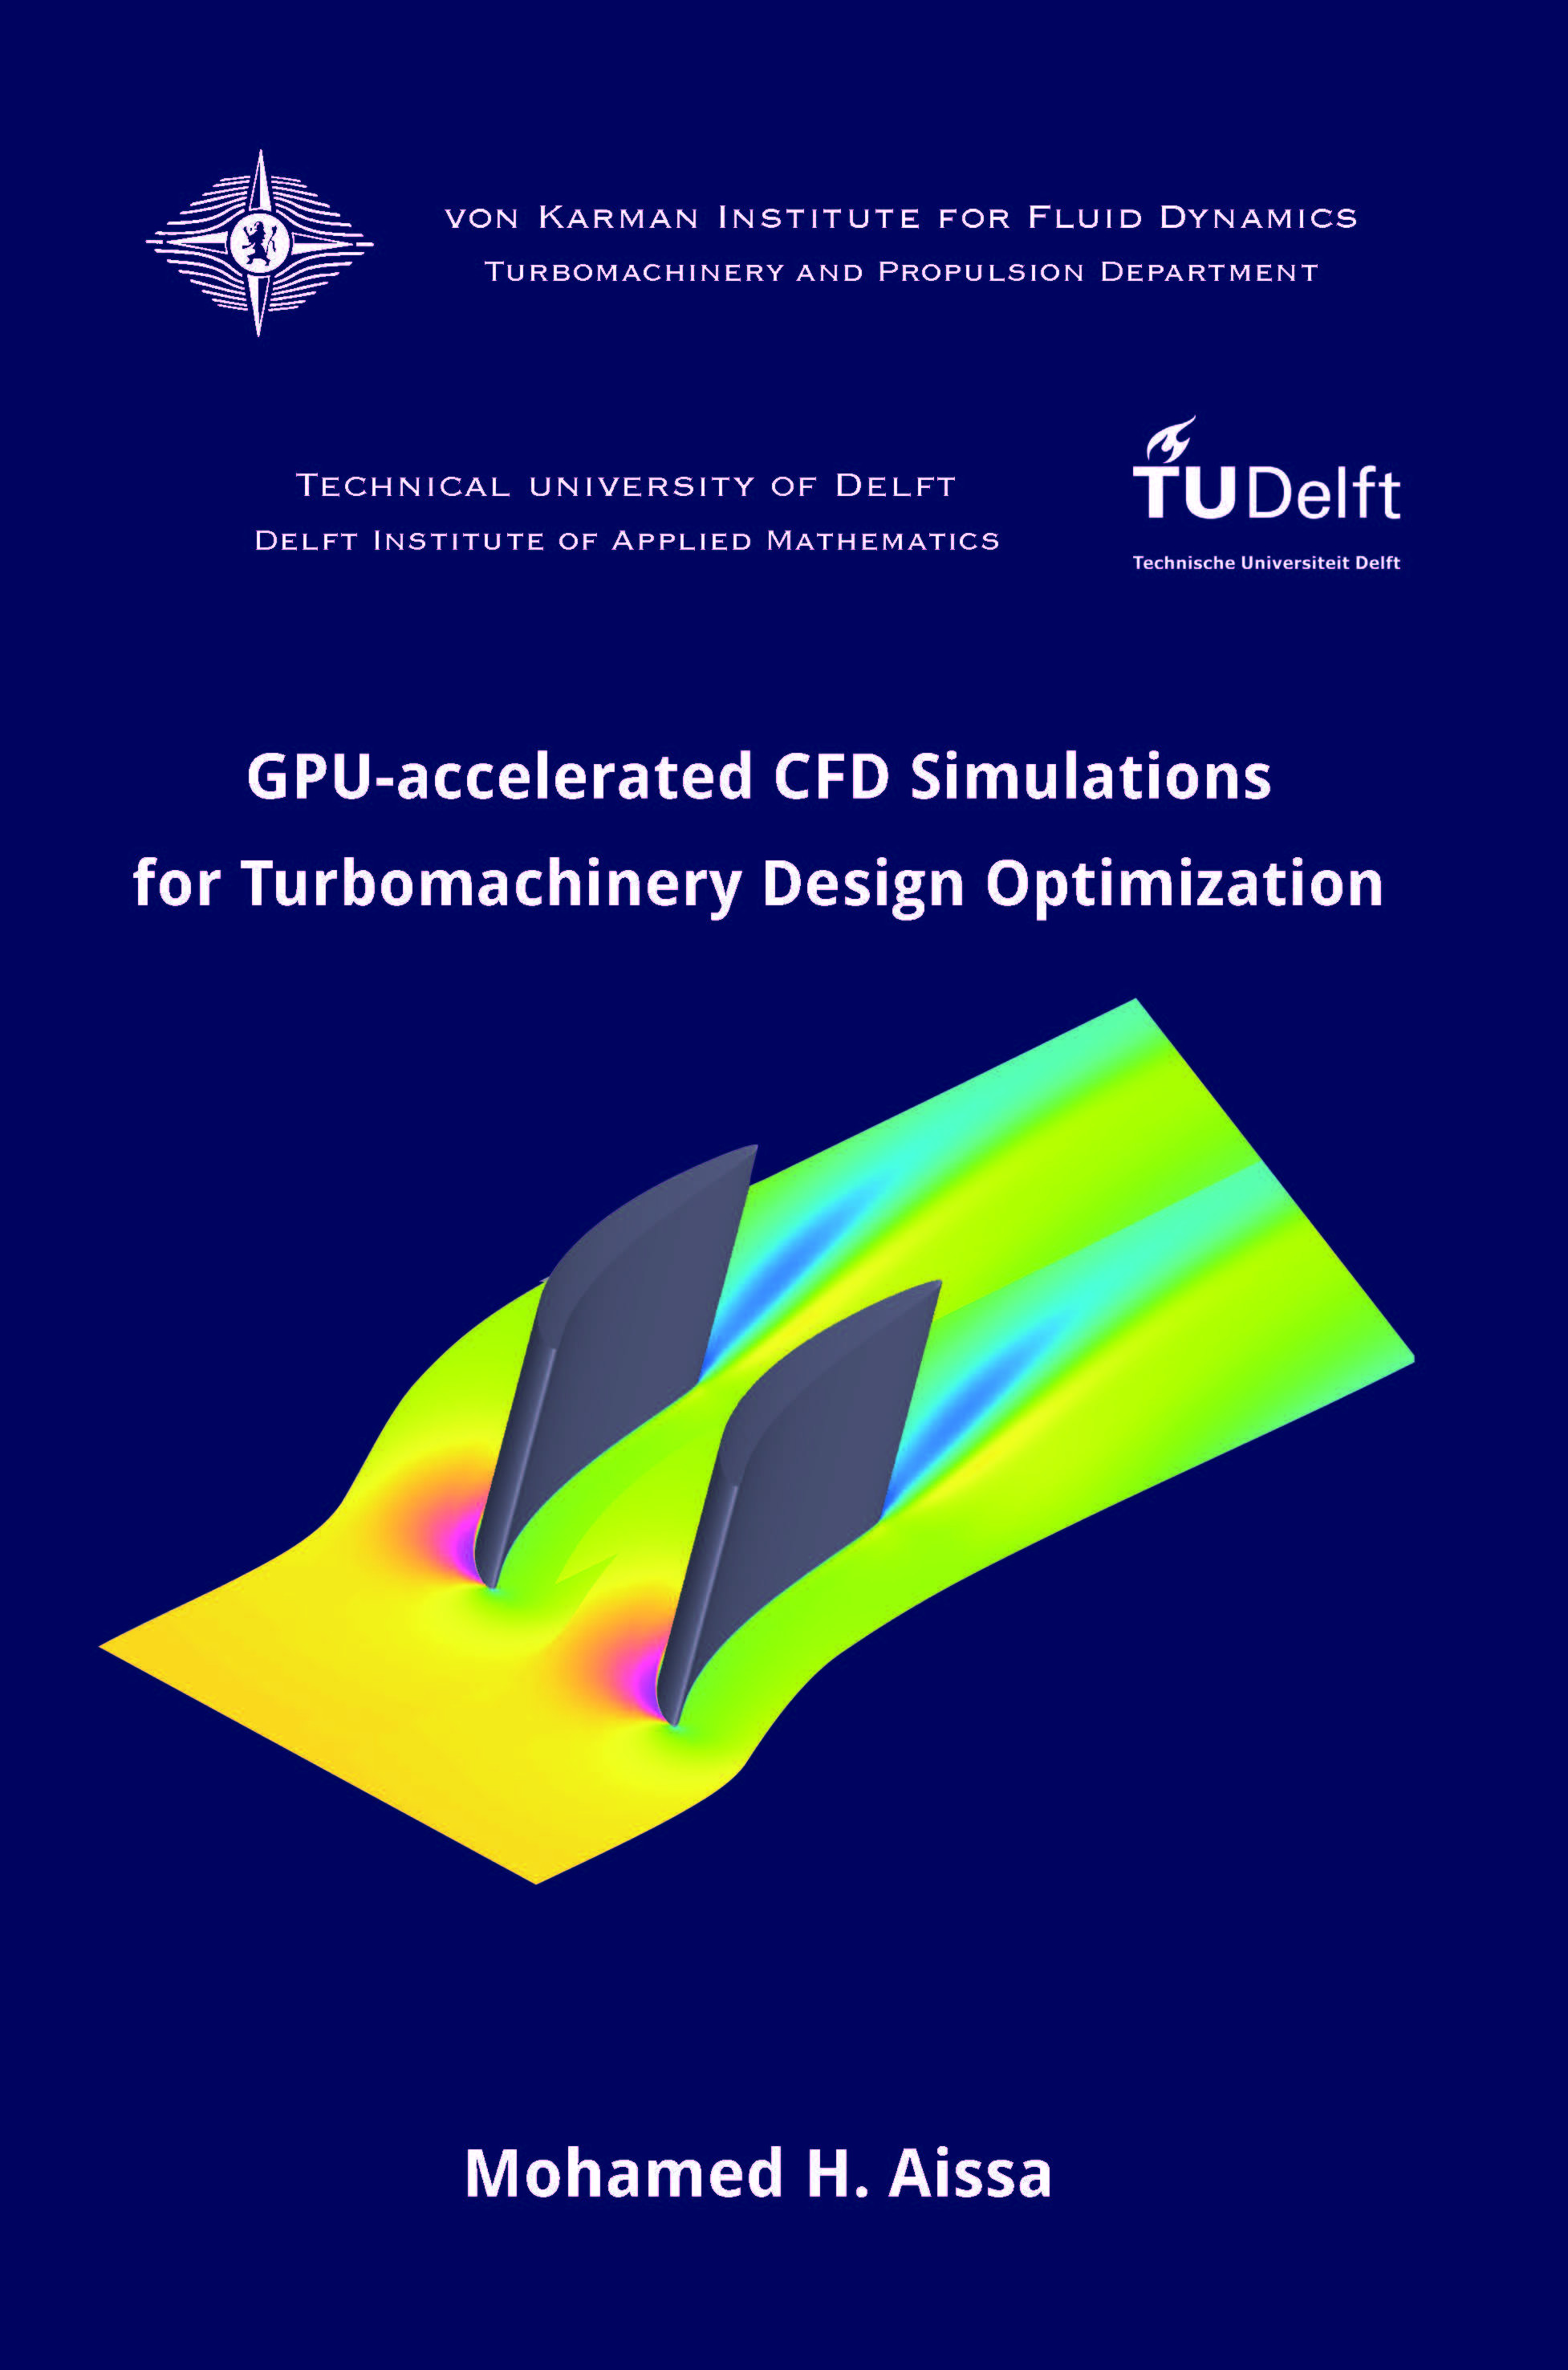 GPU-accelerated CFD Simulations for Turbomachinery Design Optimization  - Mohamed Hassanine Aissa - Ph.D. Thesis - Free download